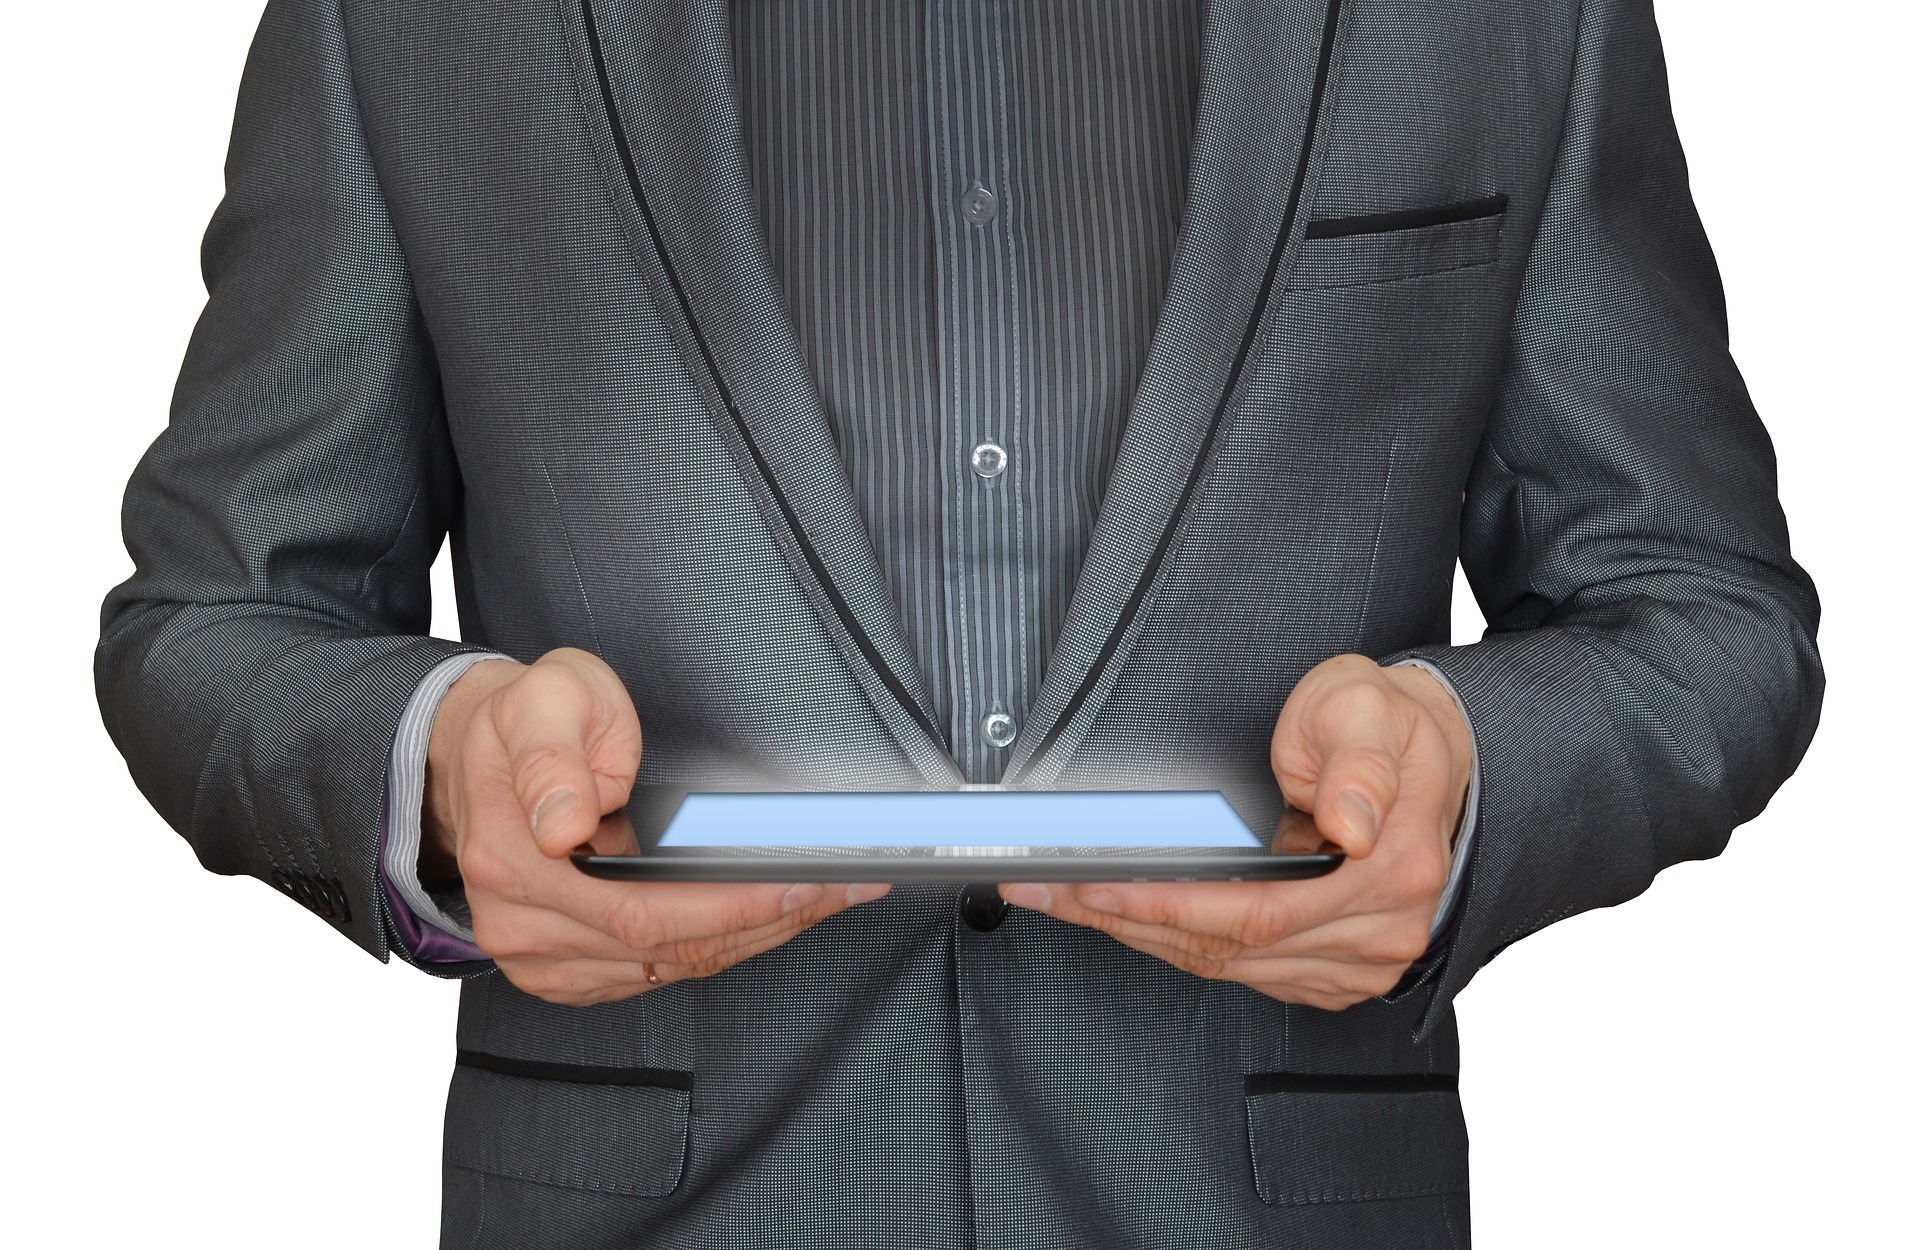 DS Computer Services Computer Consultant holdin a Tablet